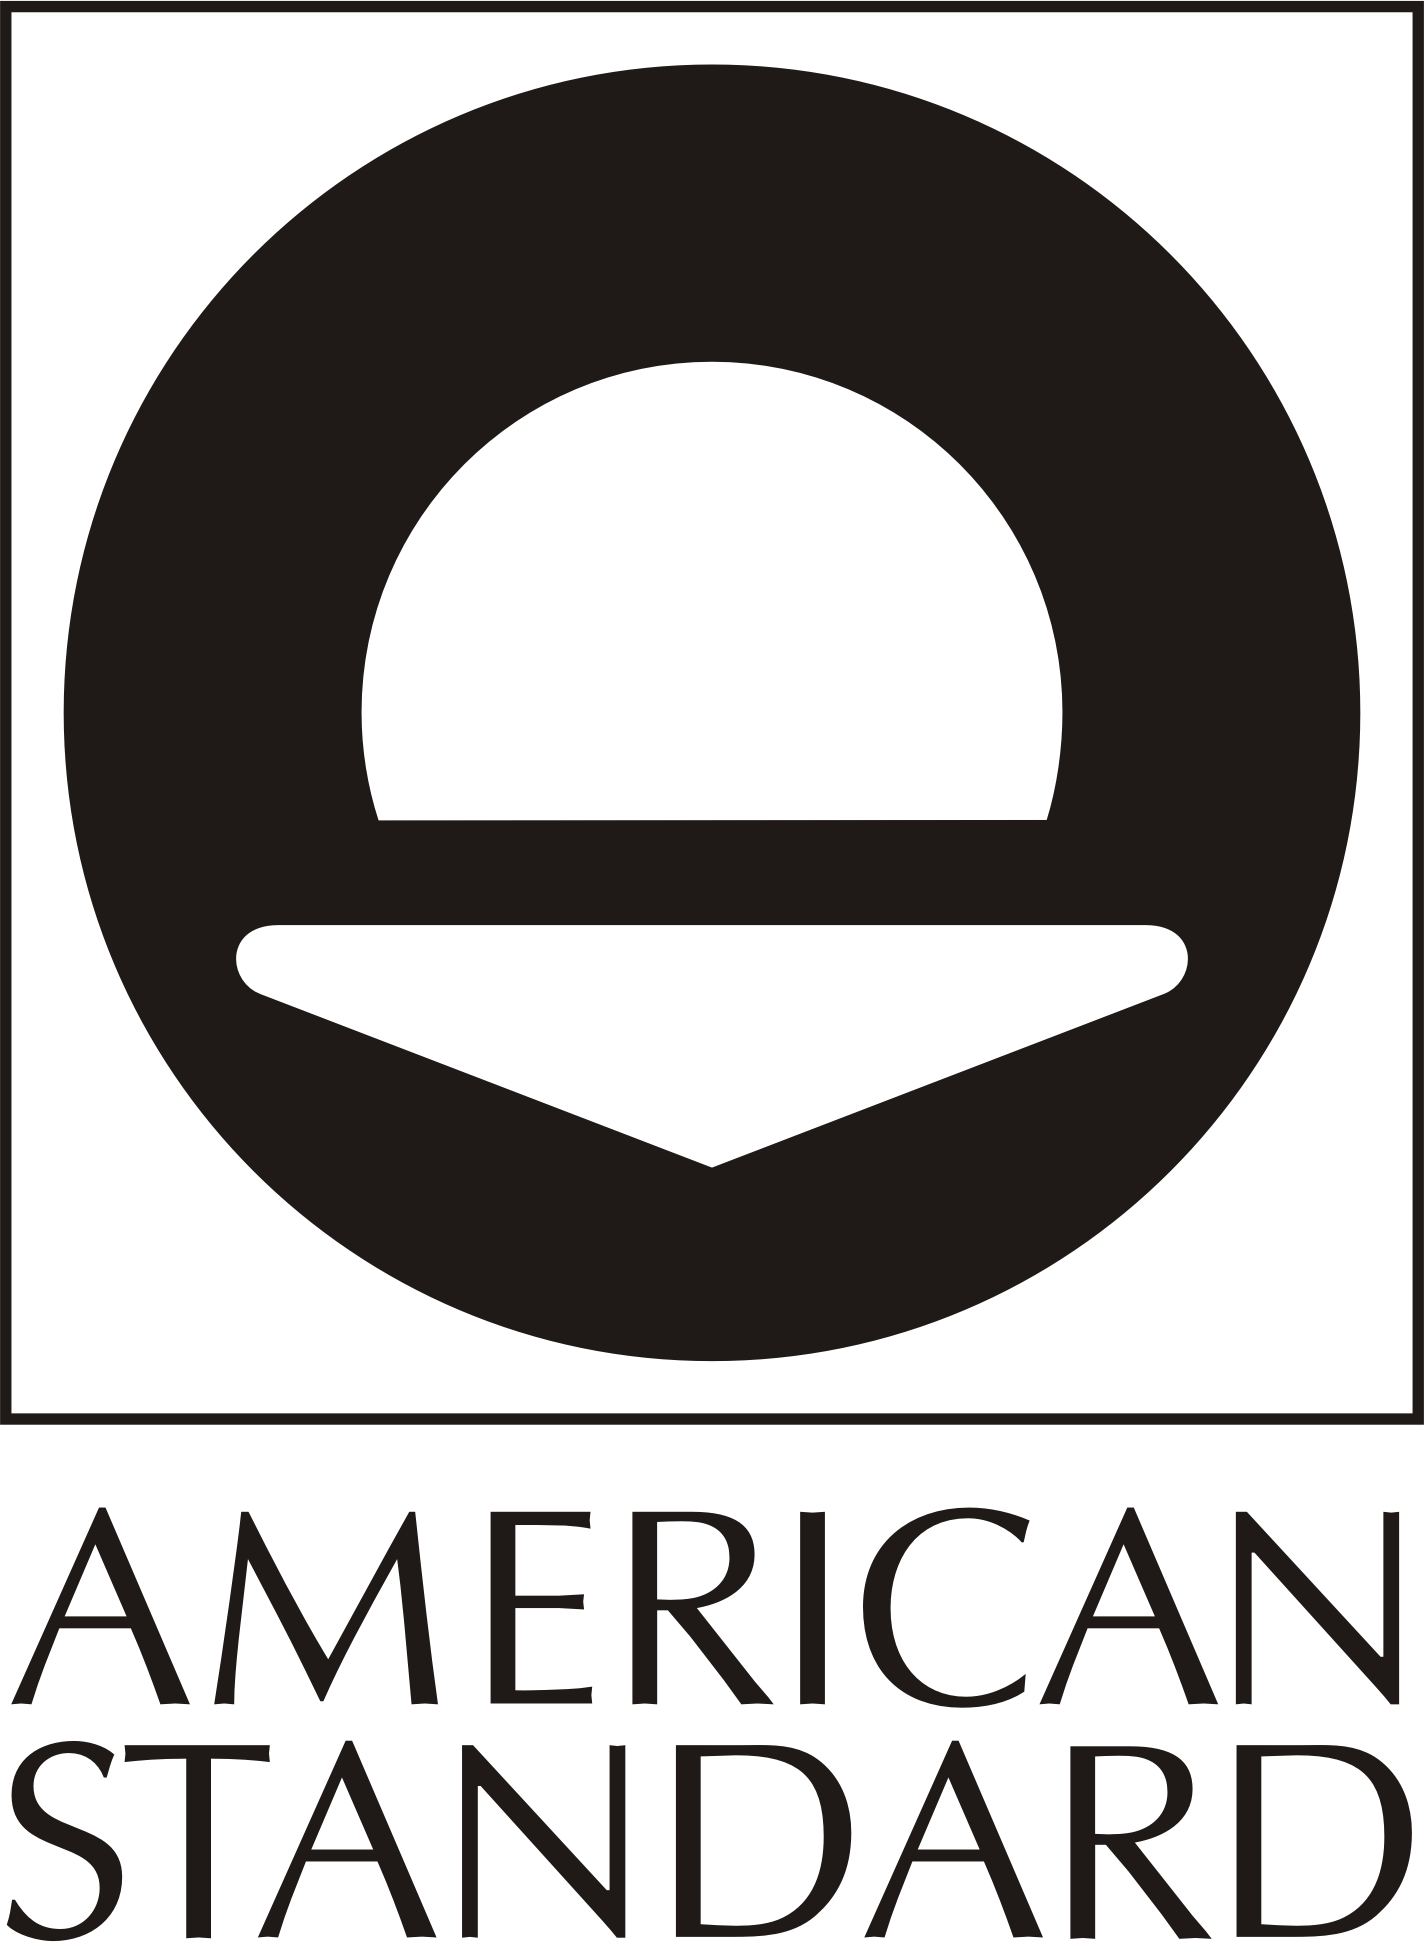 American Standard | Logopedia | FANDOM powered by Wikia